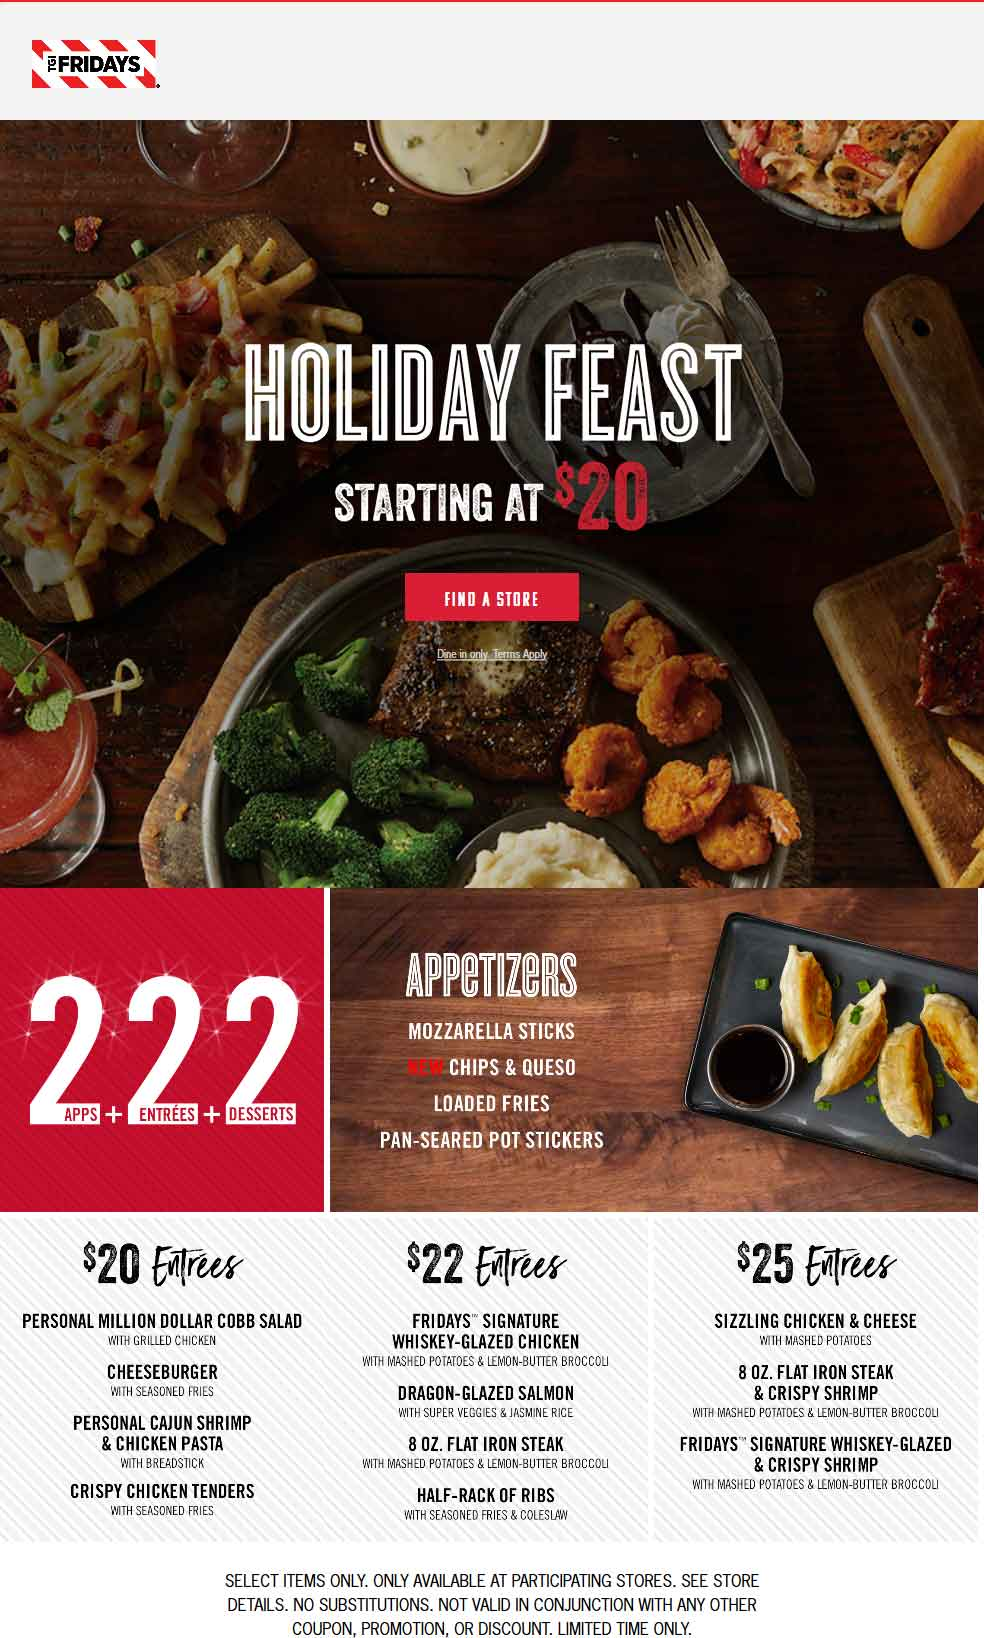 TGI Fridays Coupon March 2019 2 appetizer + 2 entrees + 2 desserts = $20 at TGI Fridays